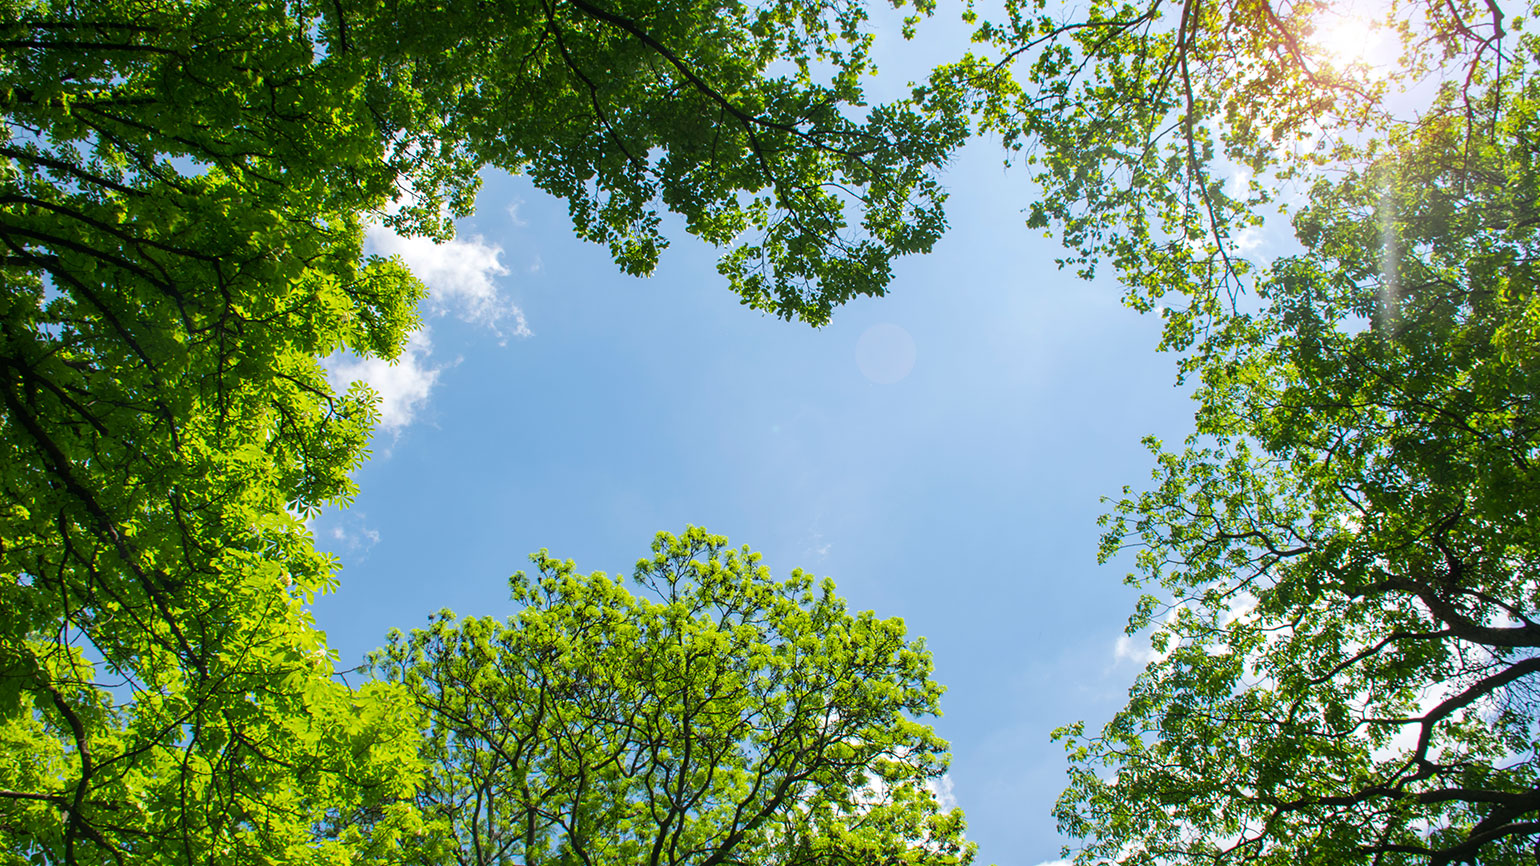 looking up through leafy green trees at a clear blue sky